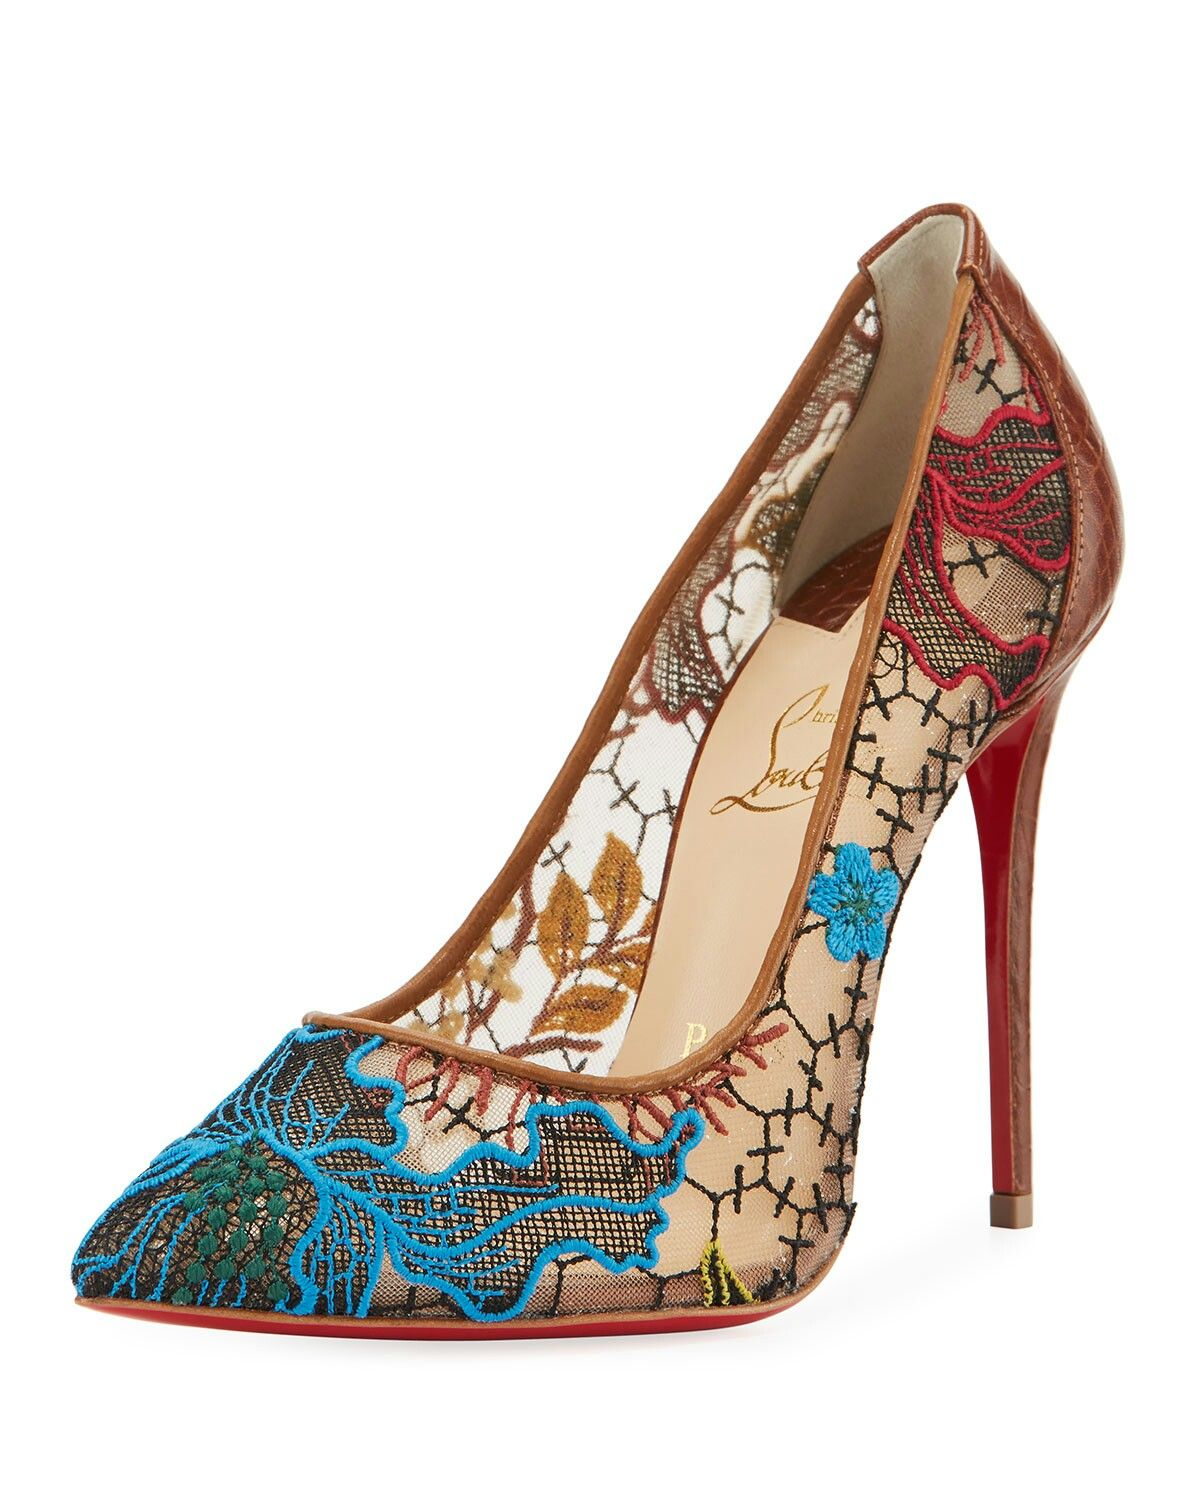 97c7bf30c0c0 Christian Louboutin - Follies Lace Red Sole Pump